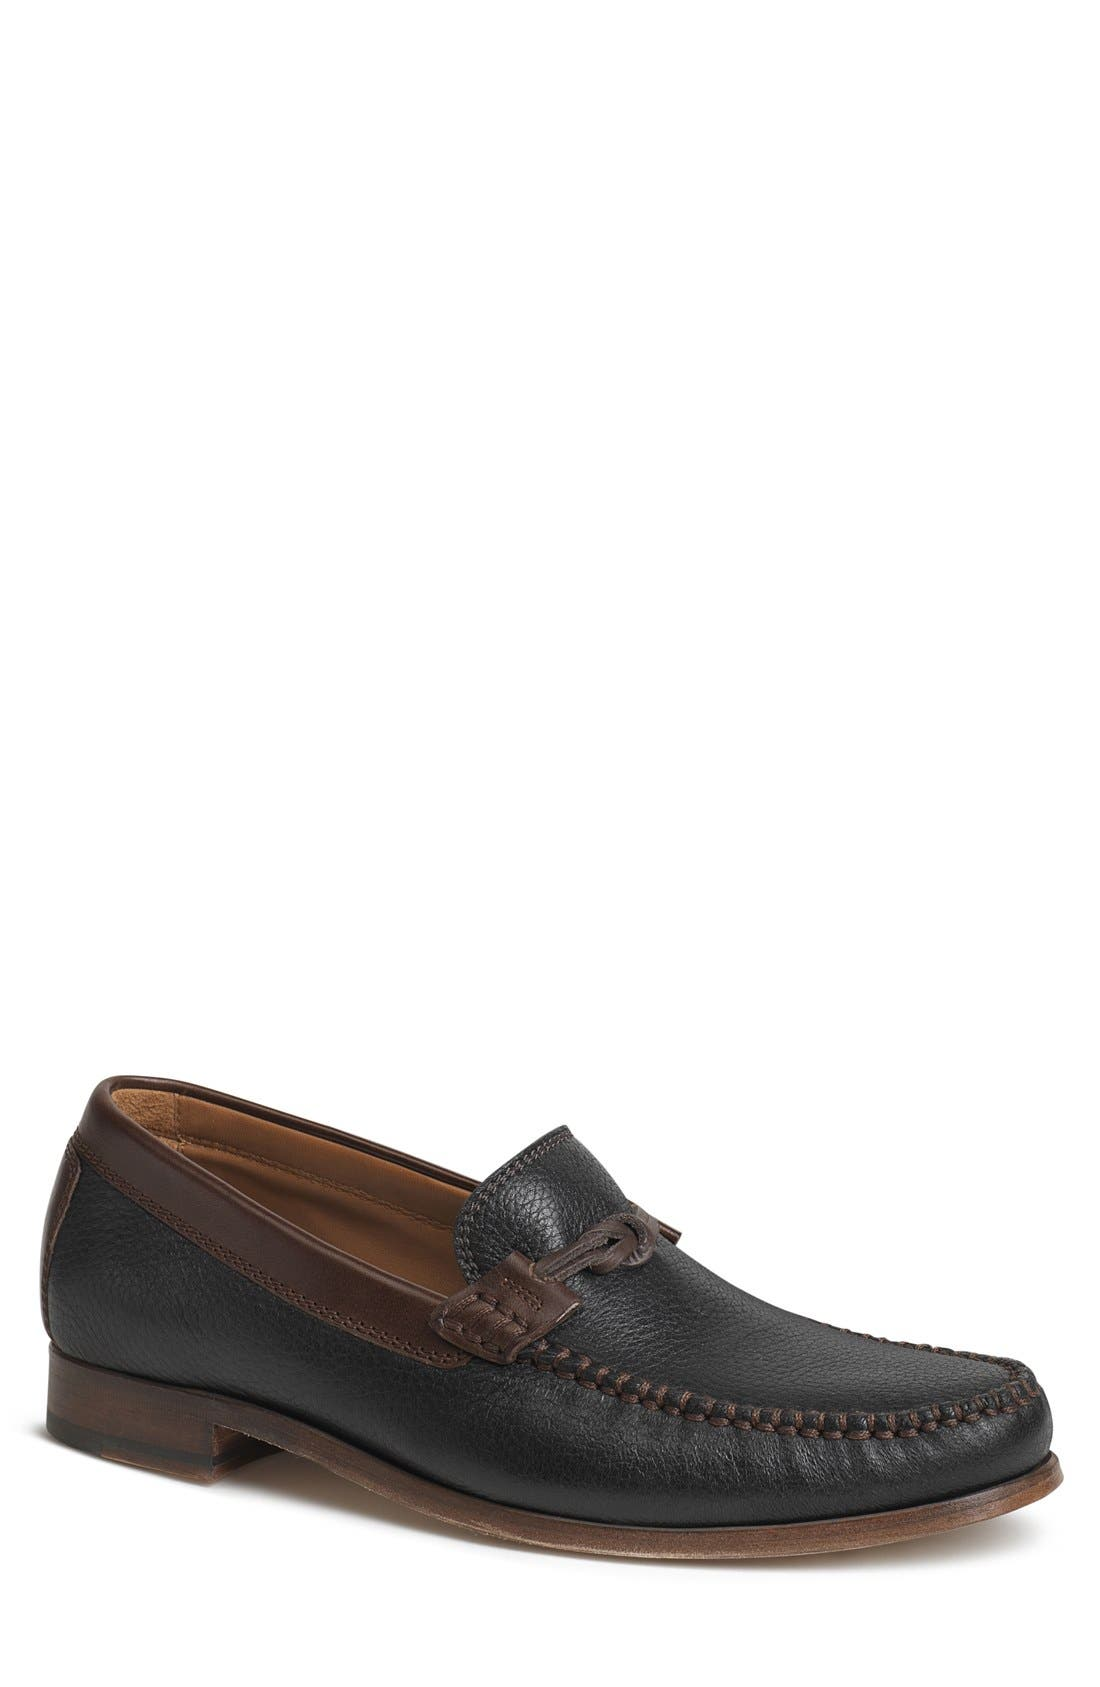 Alternate Image 1 Selected - Trask 'Sawyer' Loafer (Men)